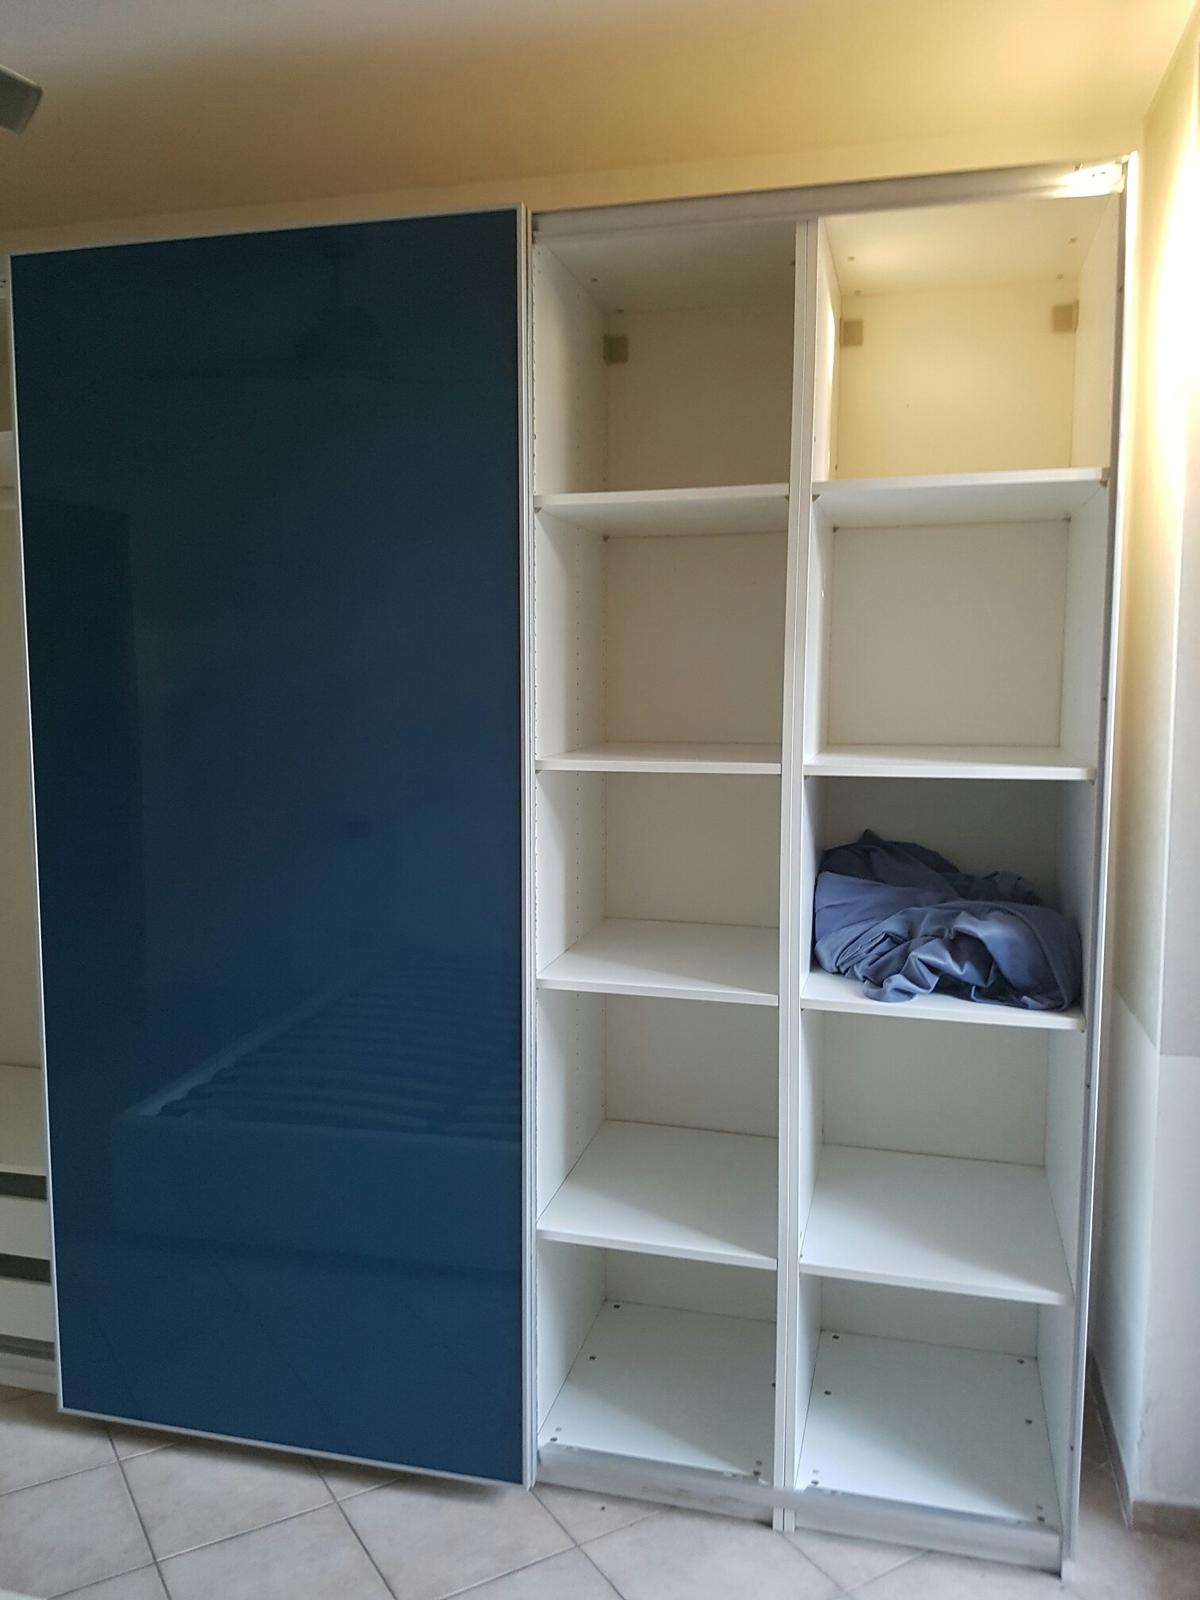 Armadio Ikea Pax In 26833 Merlino For 25000 For Sale Shpock